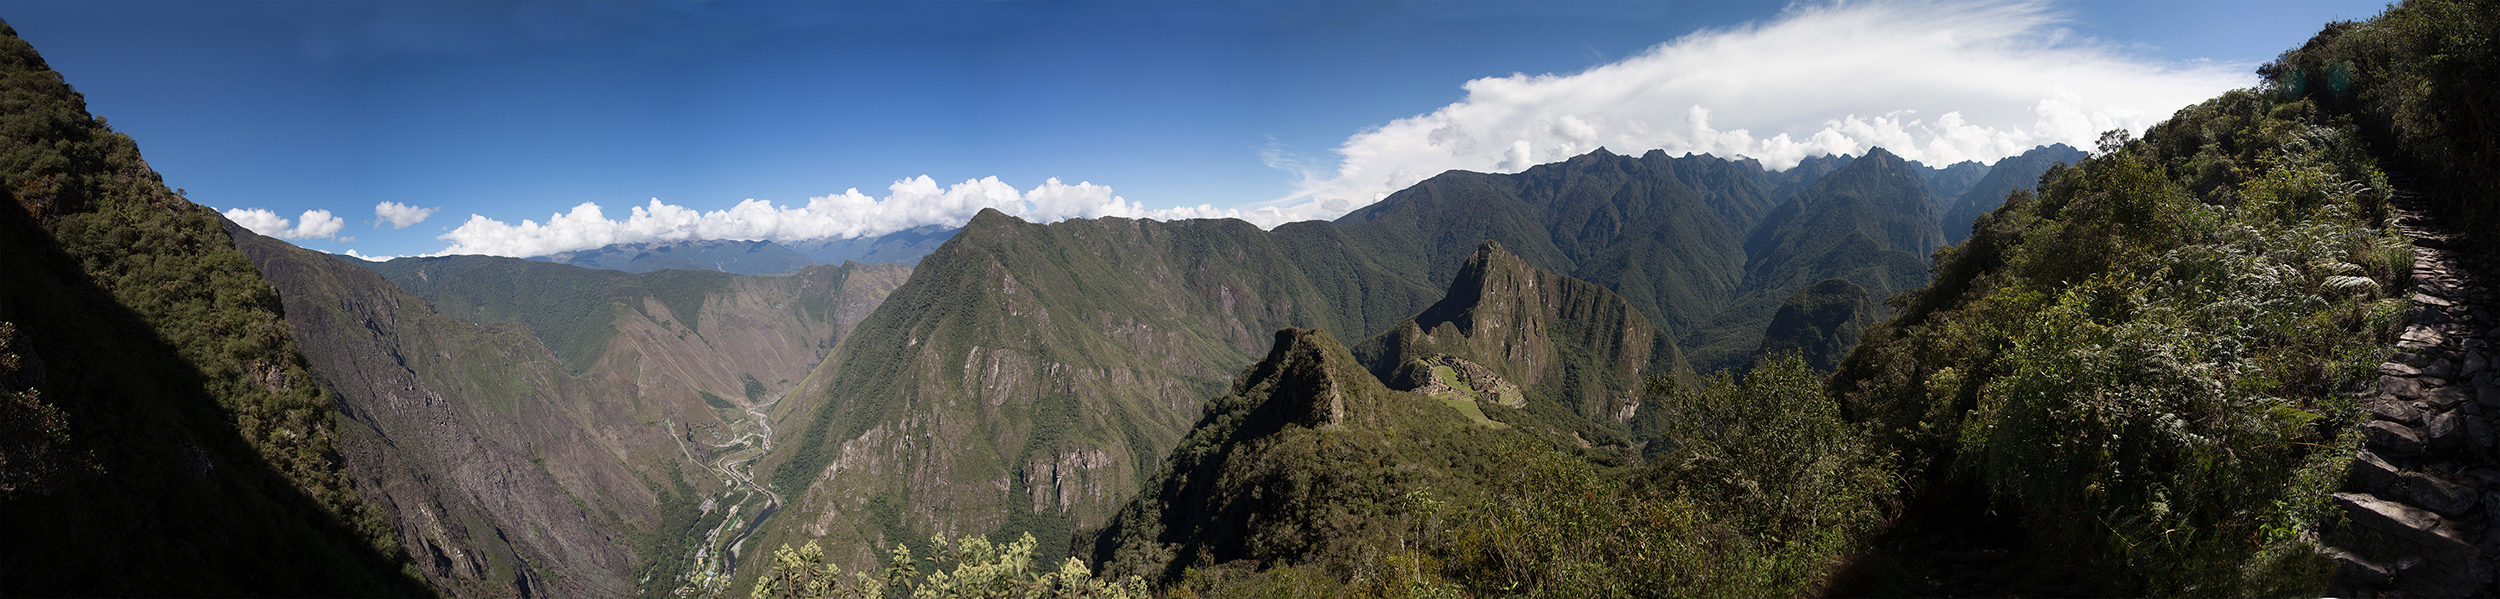 Machu Picchu Mountain_Panorama1.jpg